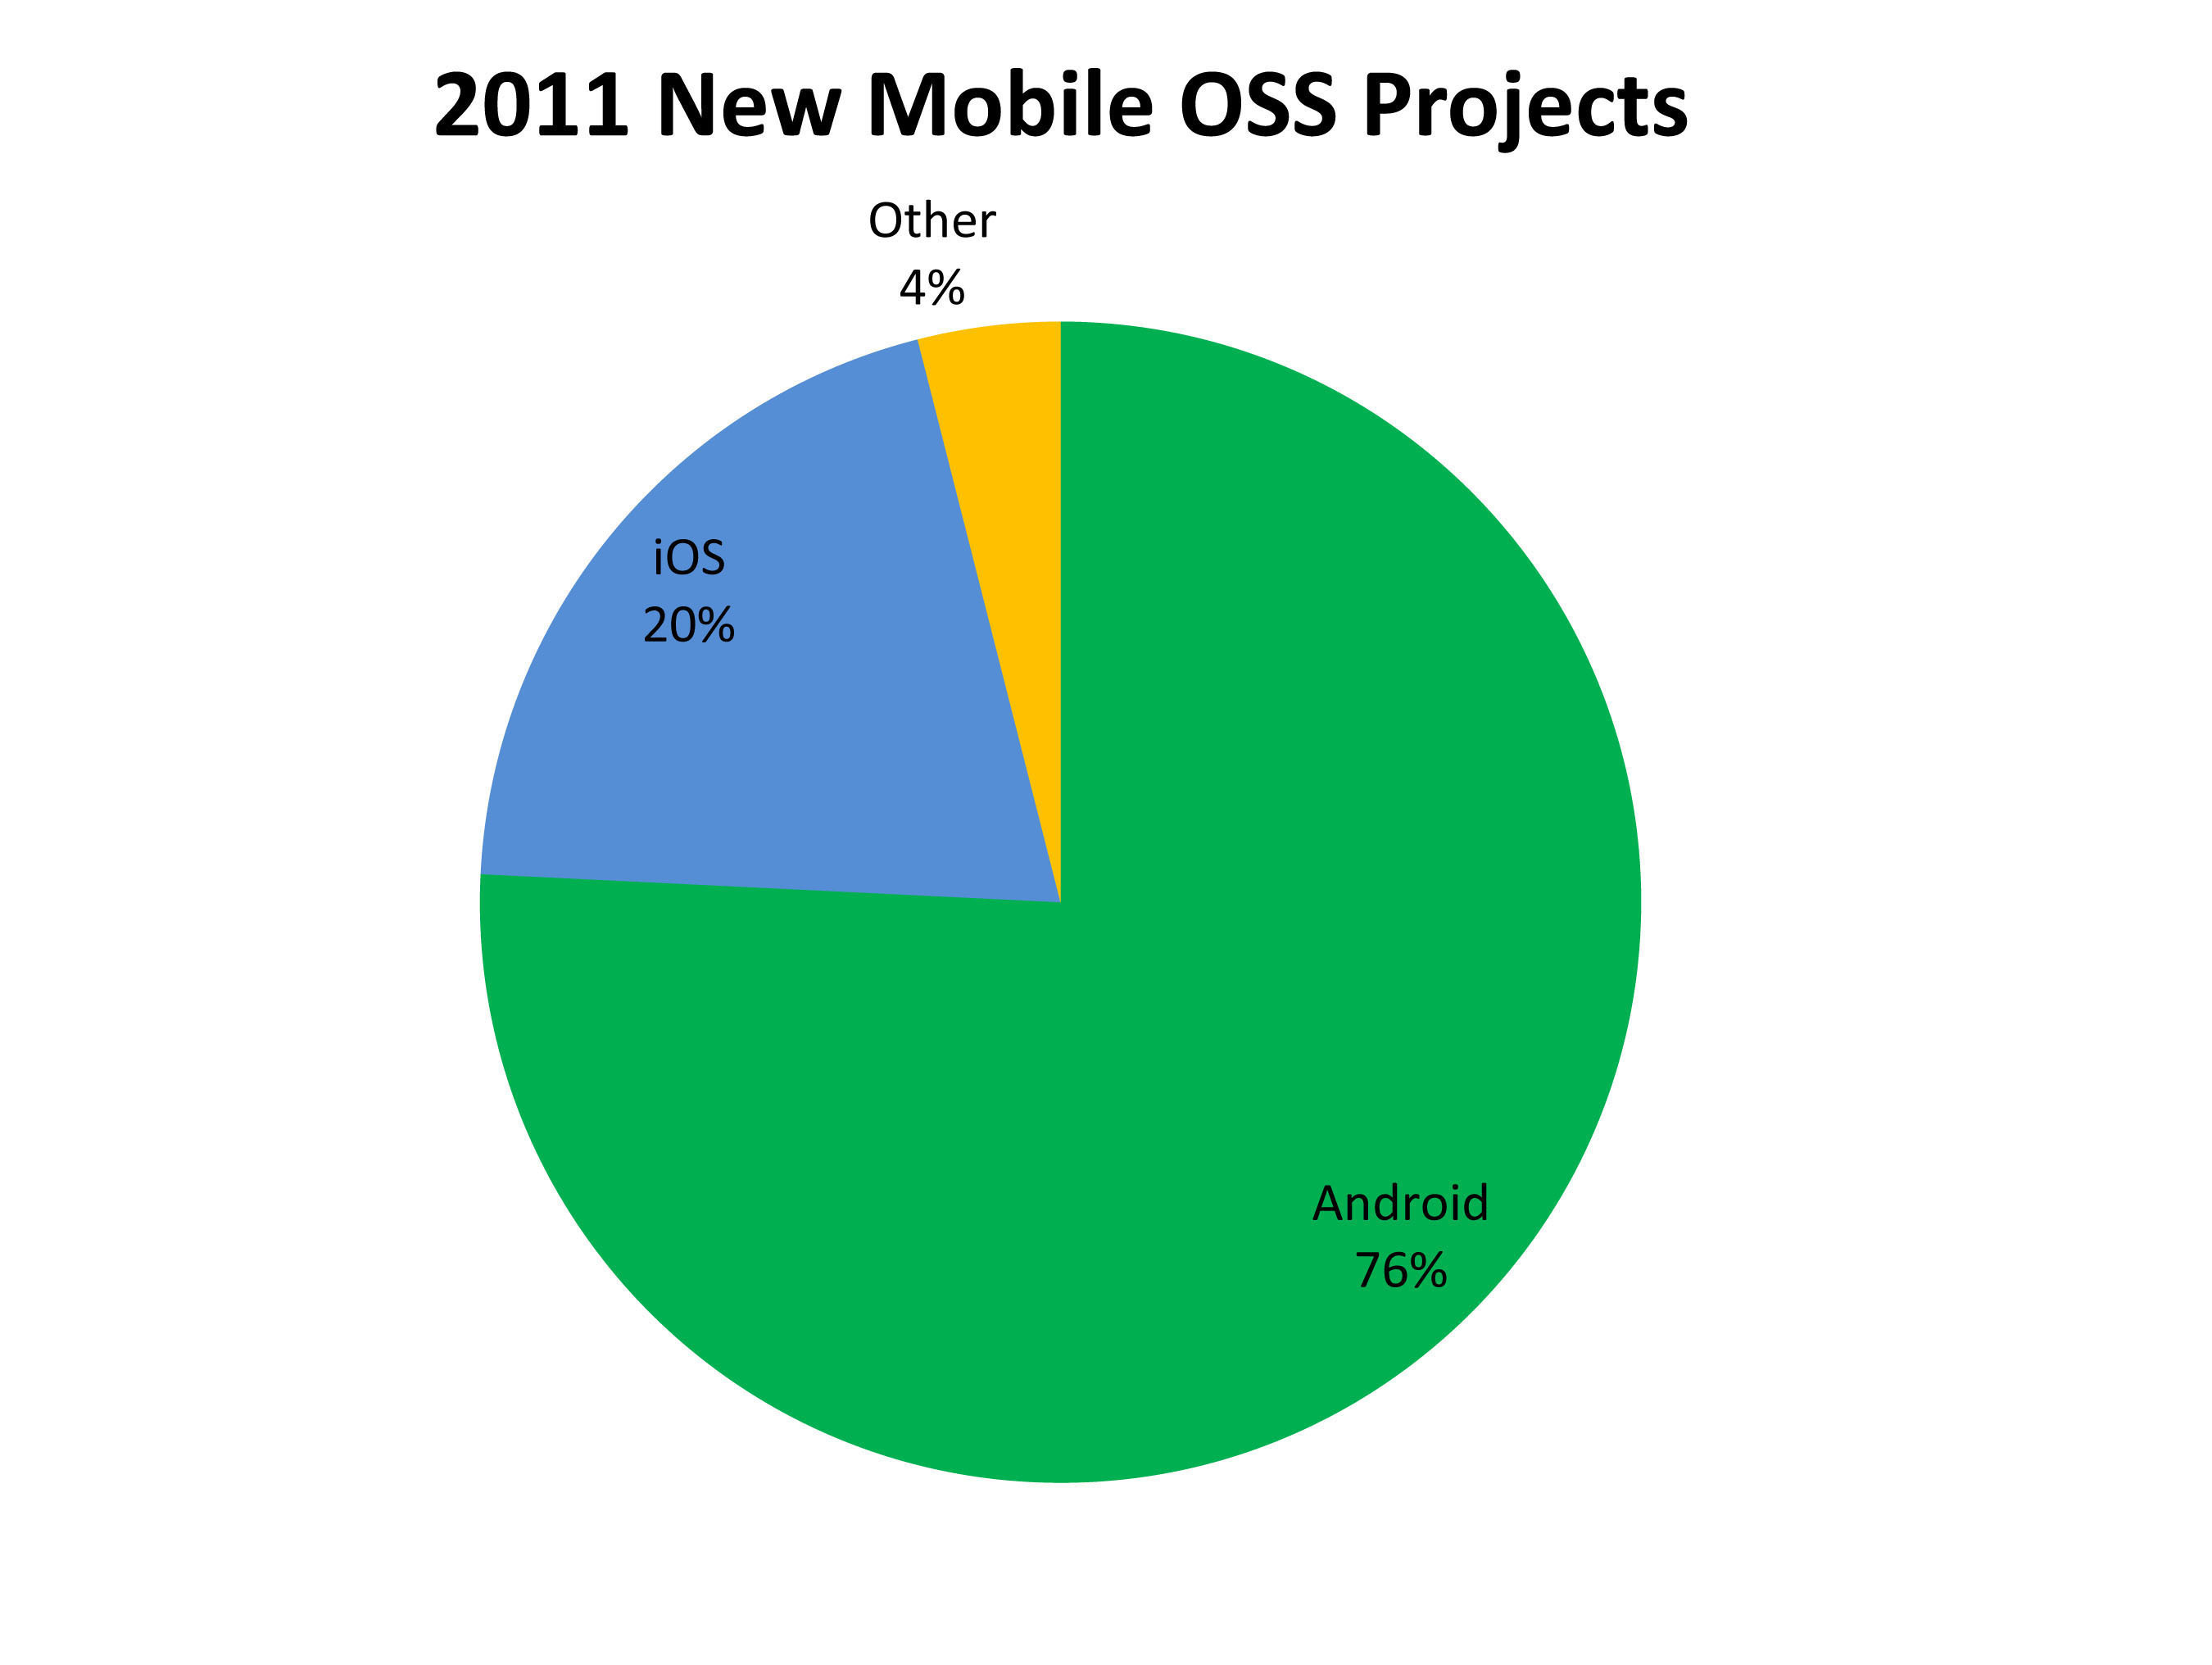 Android and Enterprise Benefit from Mobile Open Source Development, According to Data from Black